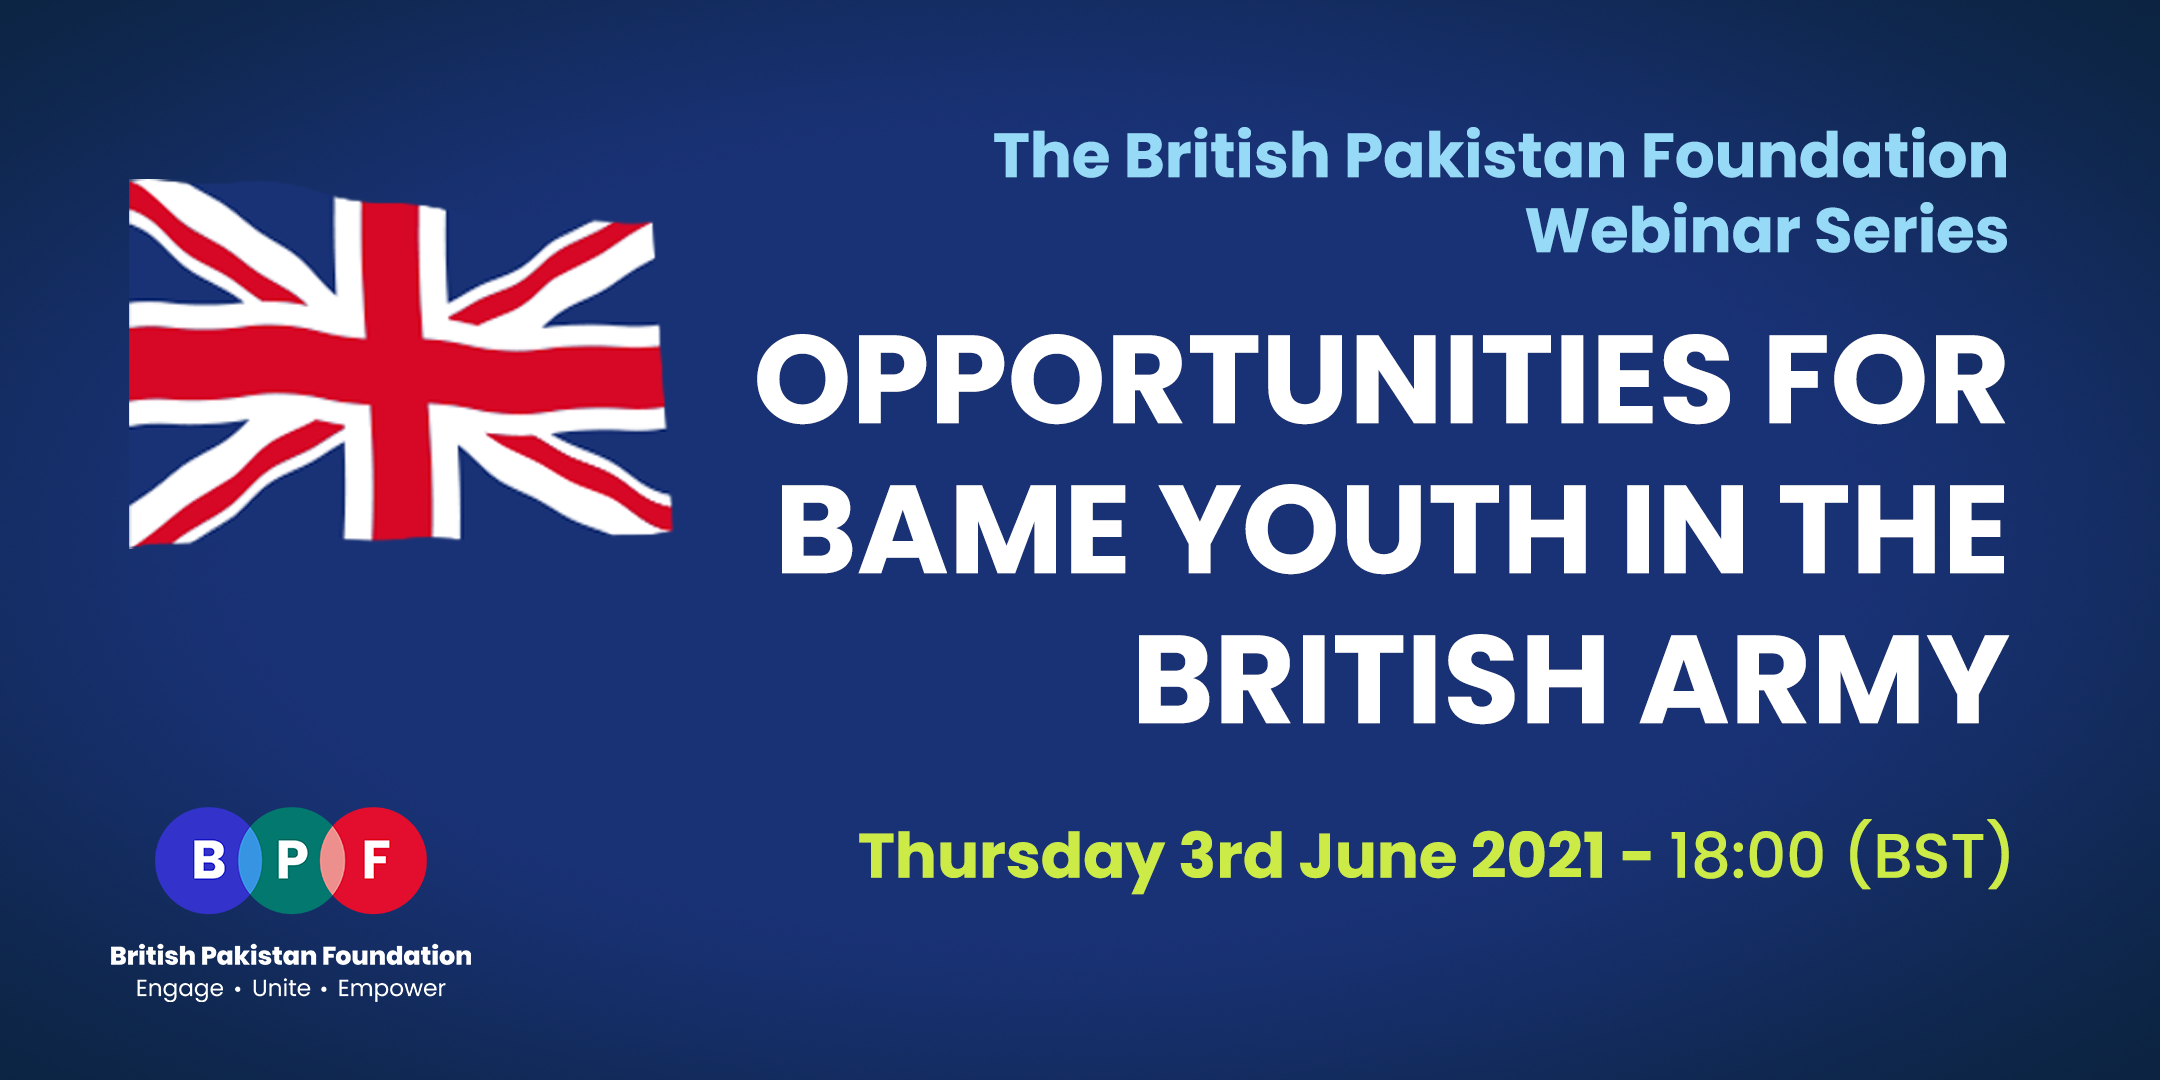 Opportunities for BAME youth in the British Army